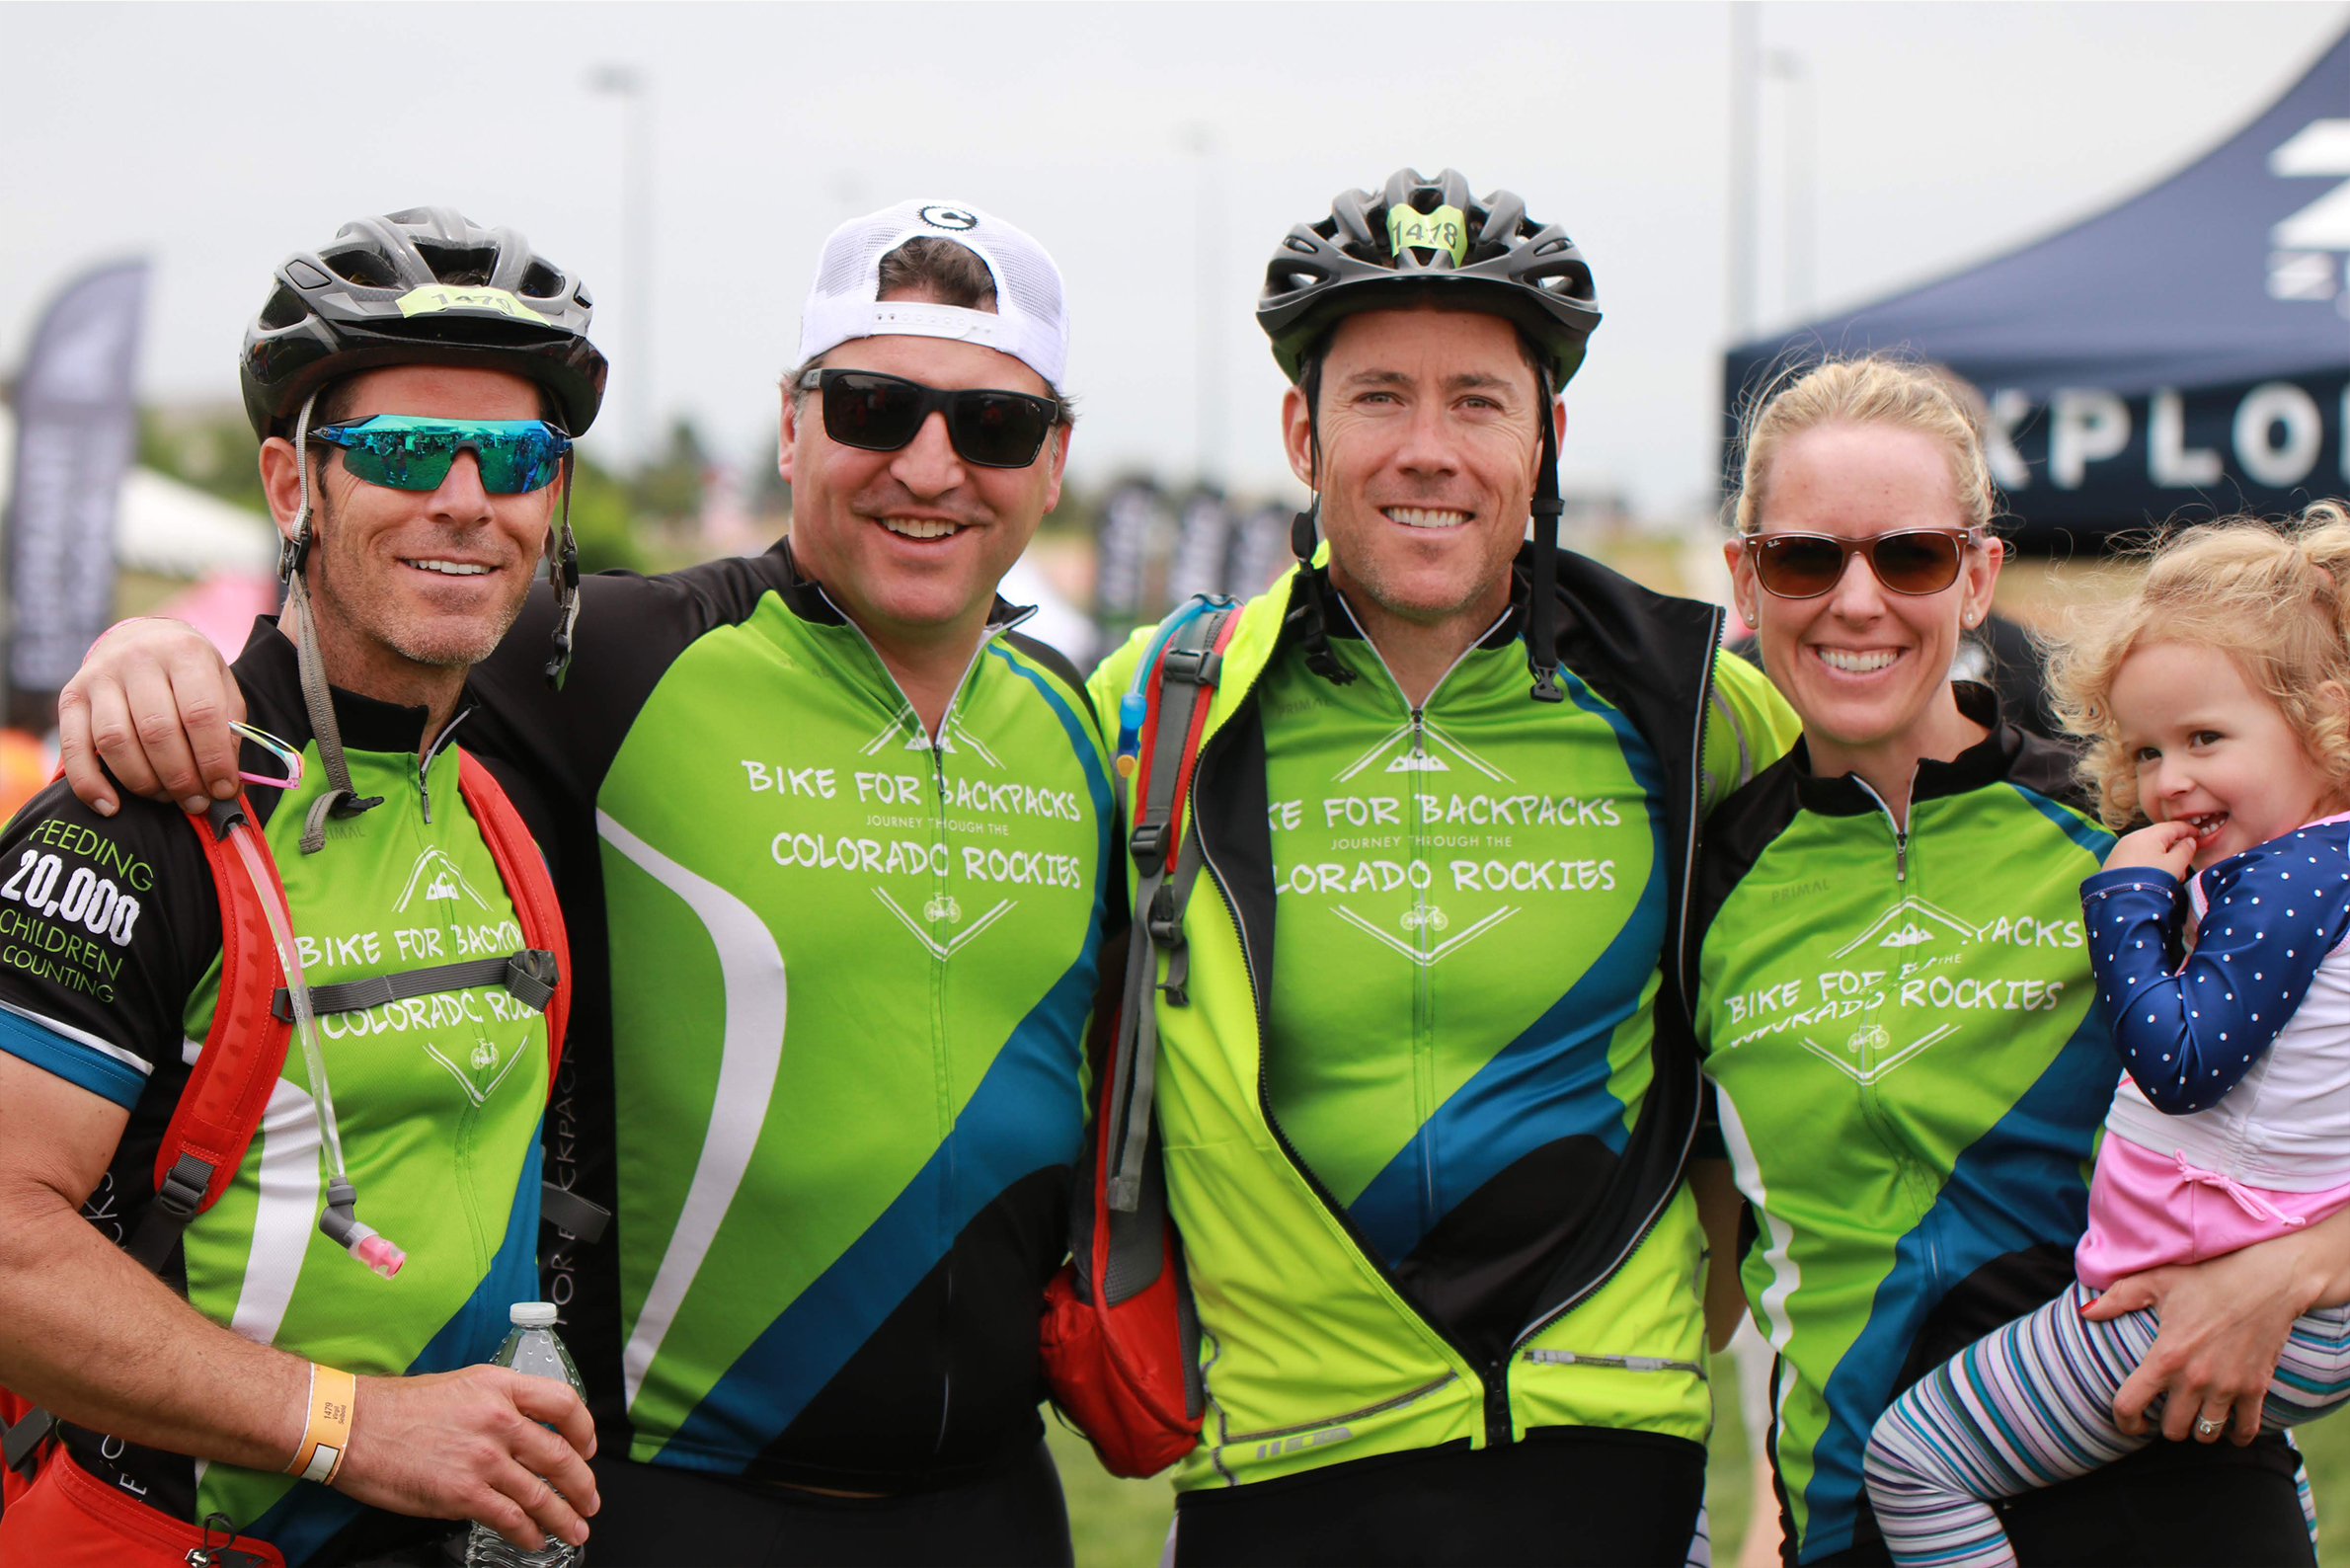 We will be riding to eliminate childhood hunger this Sunday at the Elephant Rock Cycling Festival.